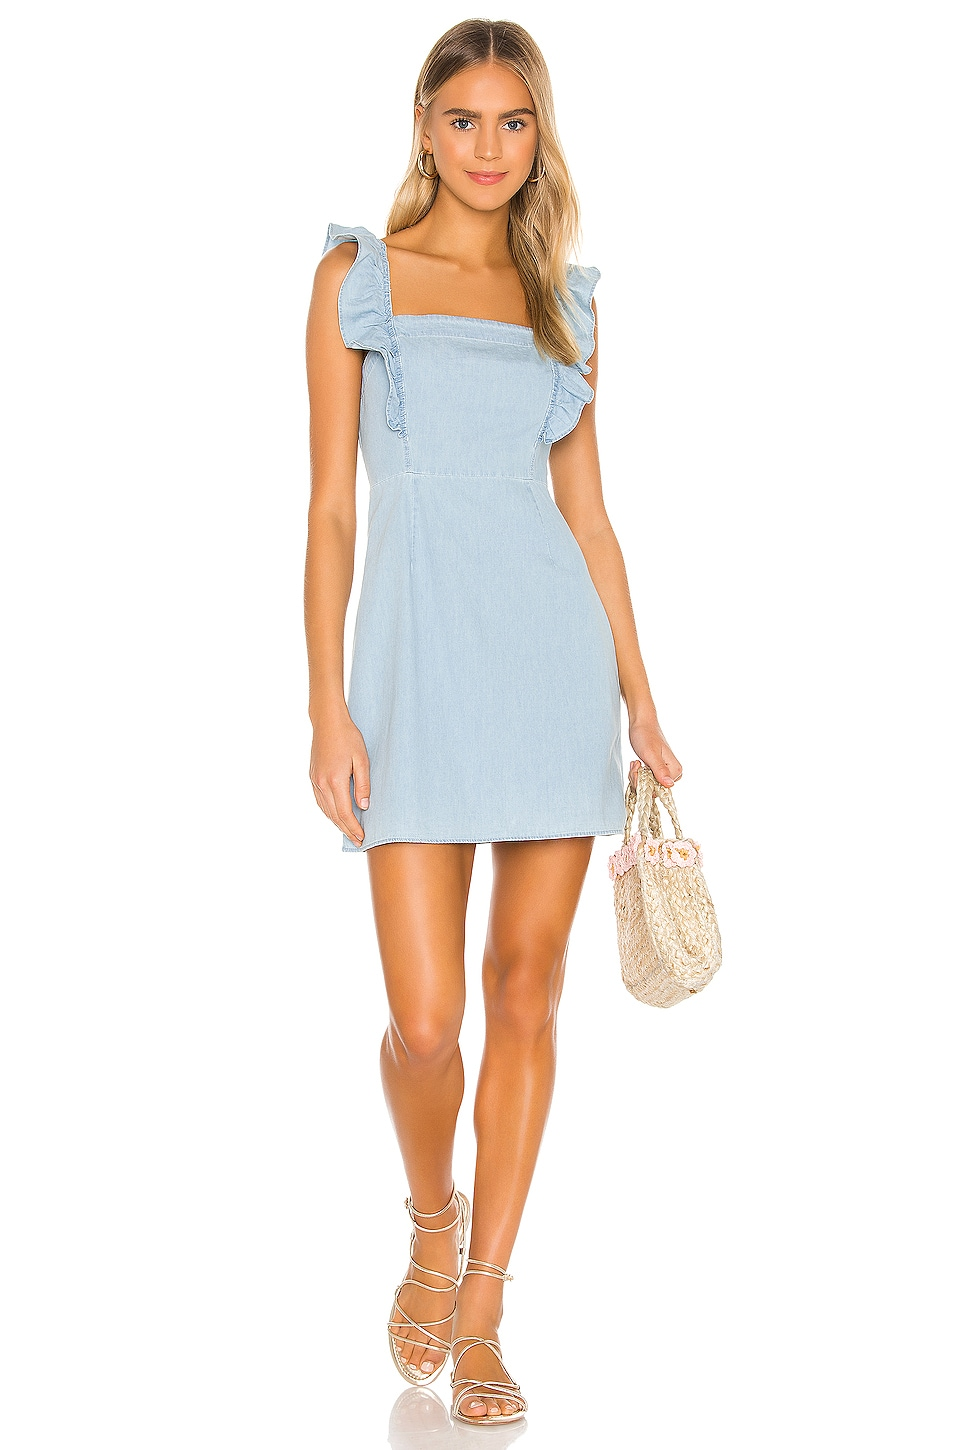 JACK by BB Dakota Chambray All Day Dress             BB Dakota                                                                                                       CA$ 108.89 3